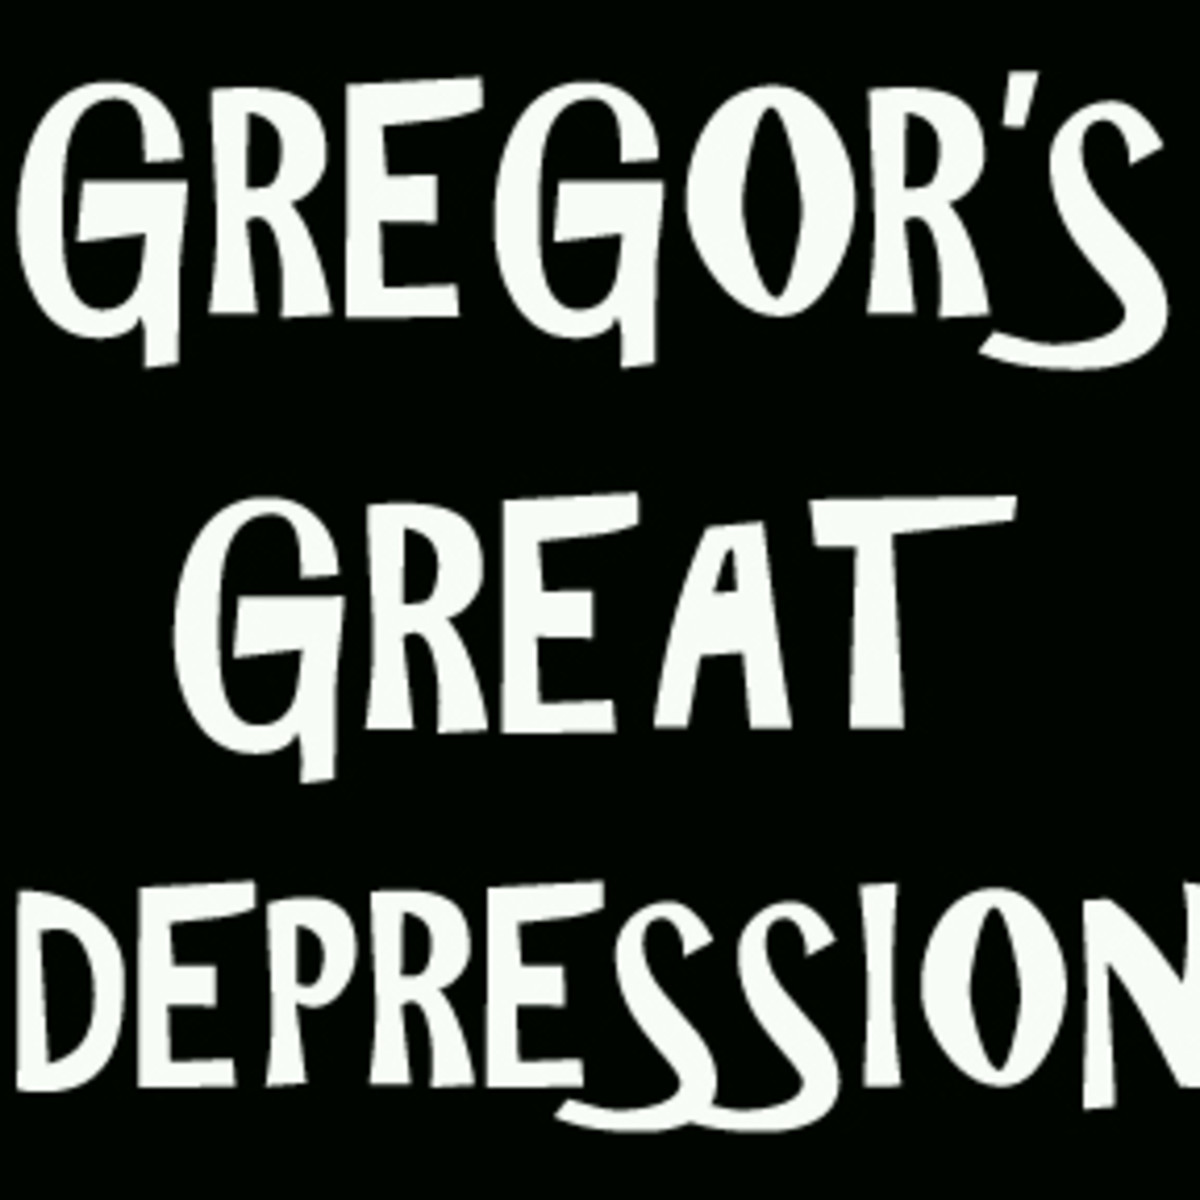 Franz Kafka's The Metamorphosis: Gregor's Mental Illness and the Impact of His Depression